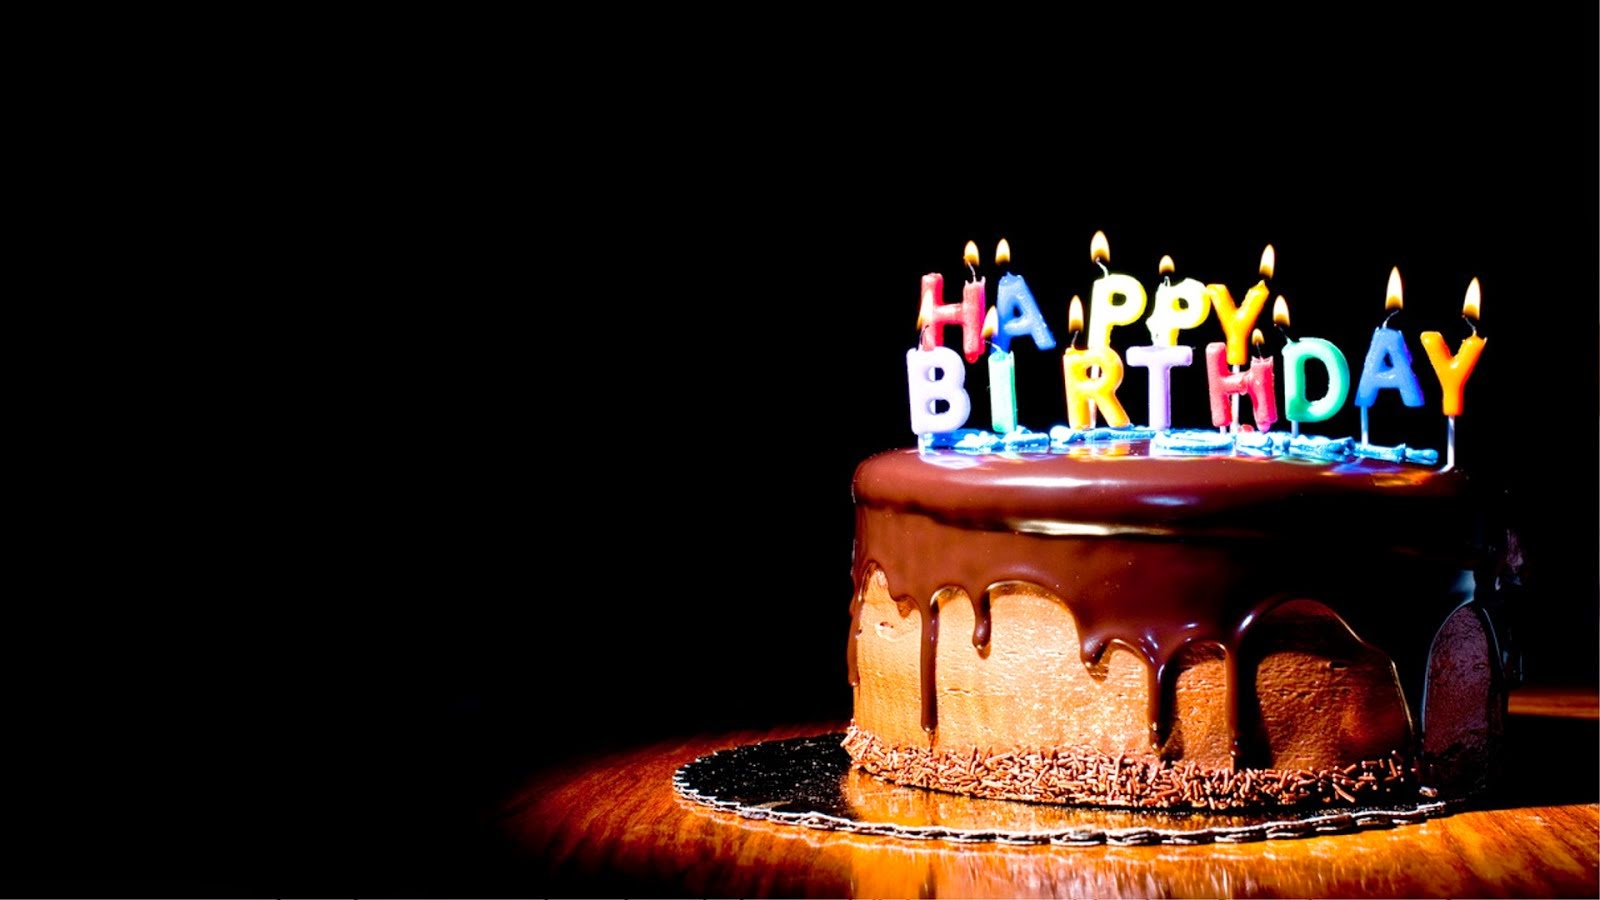 Free download Happy Birthday Wallpapers Download High Definition ...